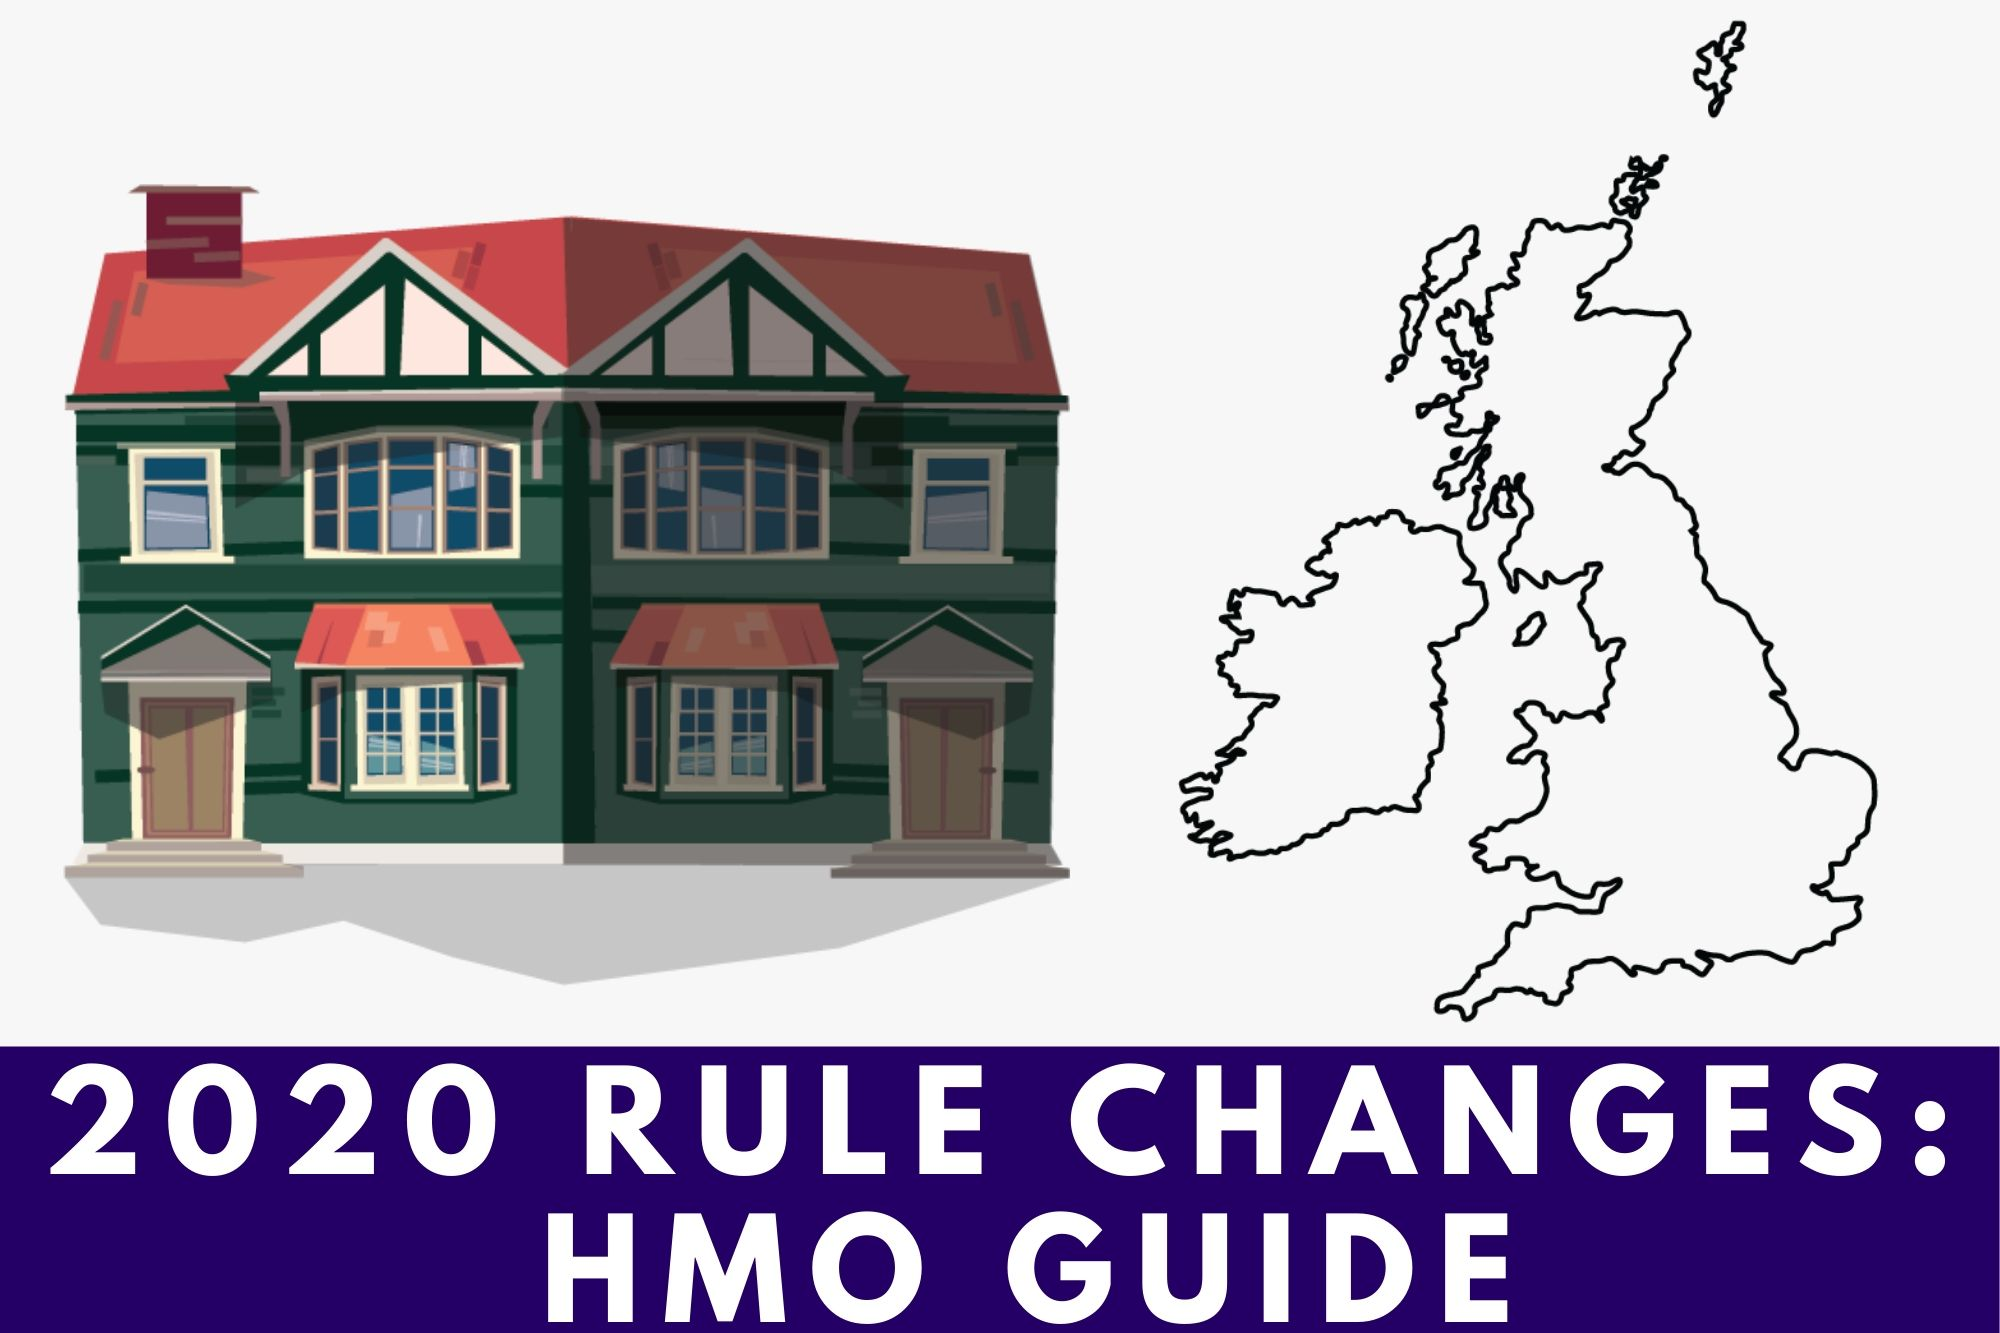 2020 Rule Changes HMO Guide